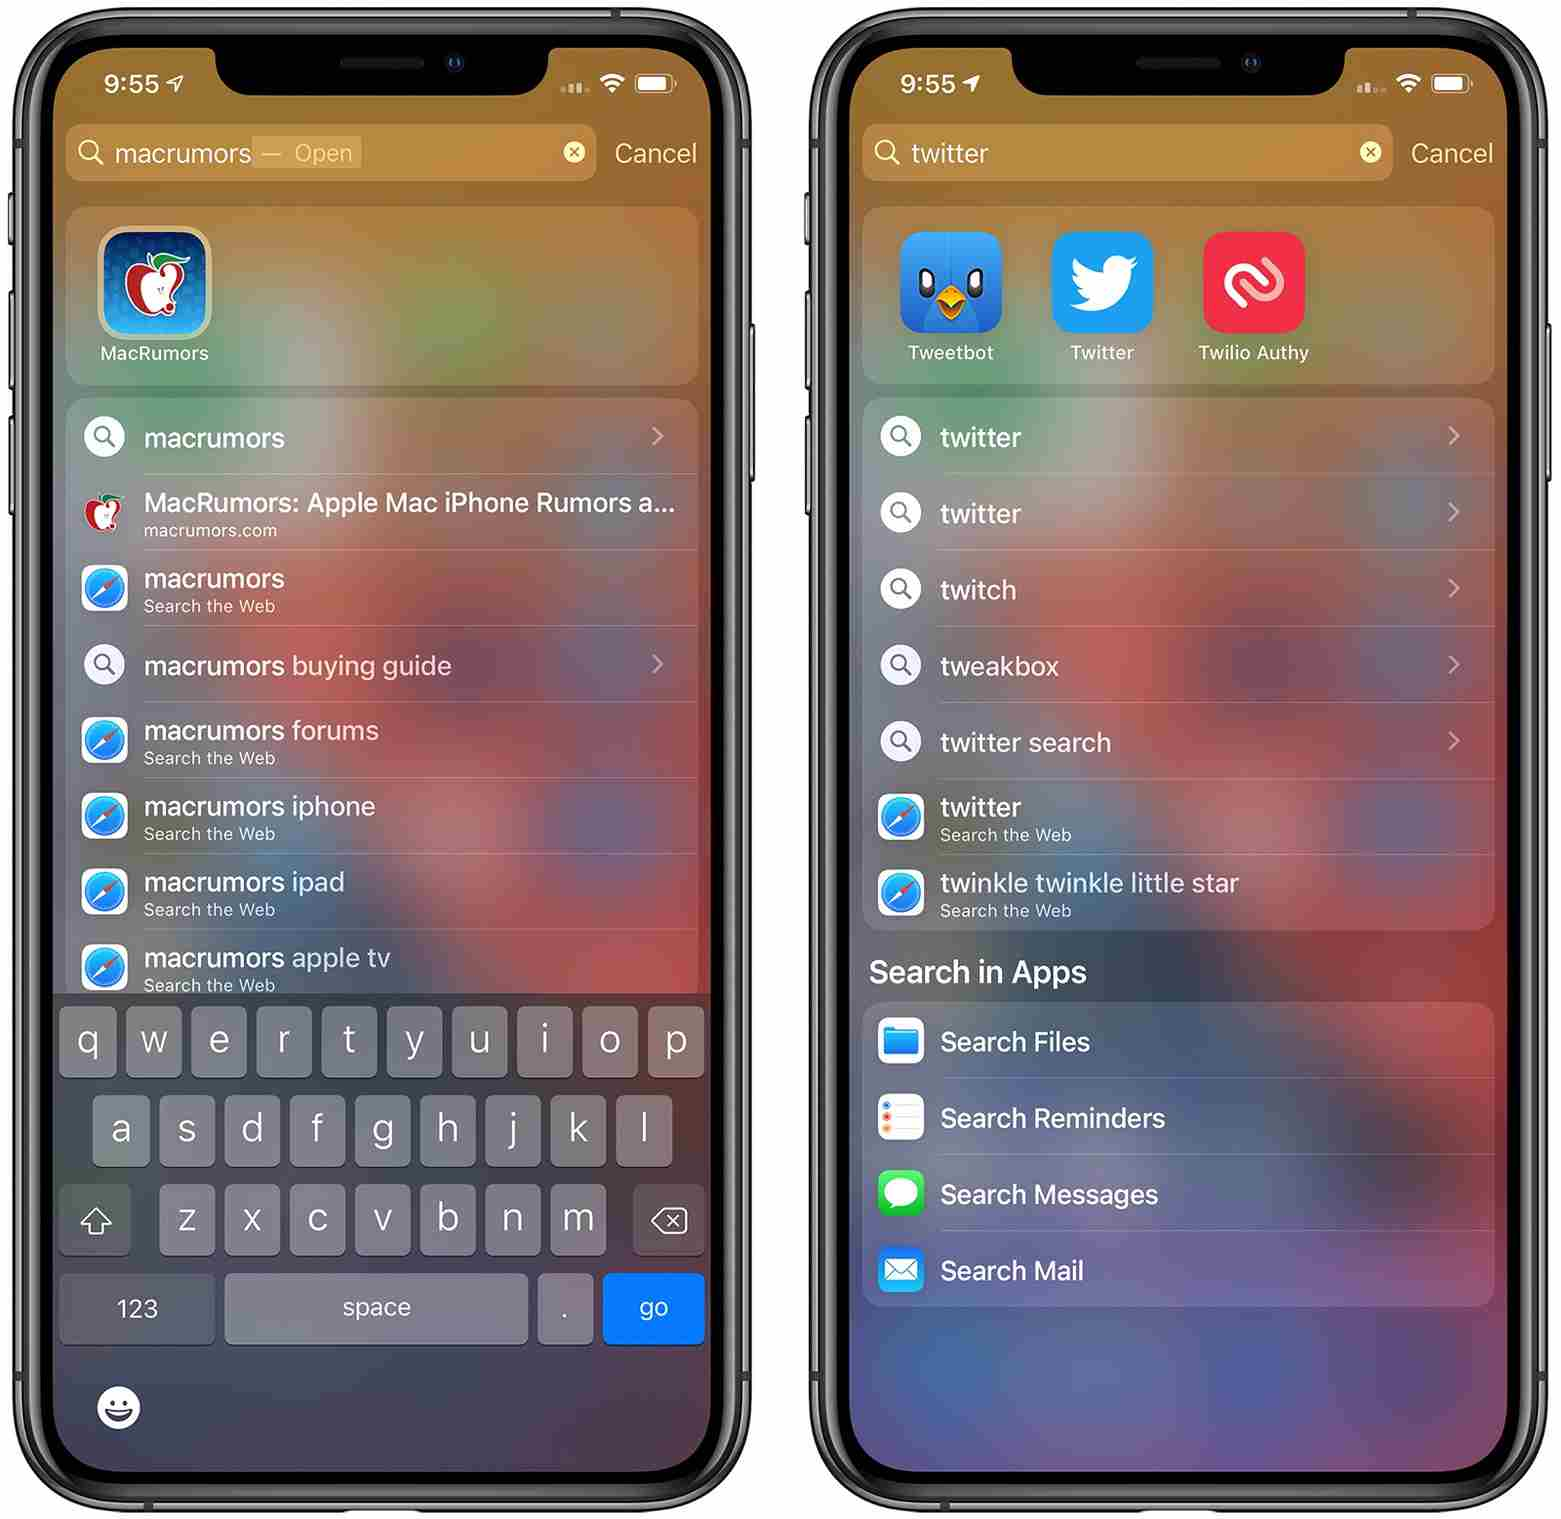 Better Search - iOS 14 Feature